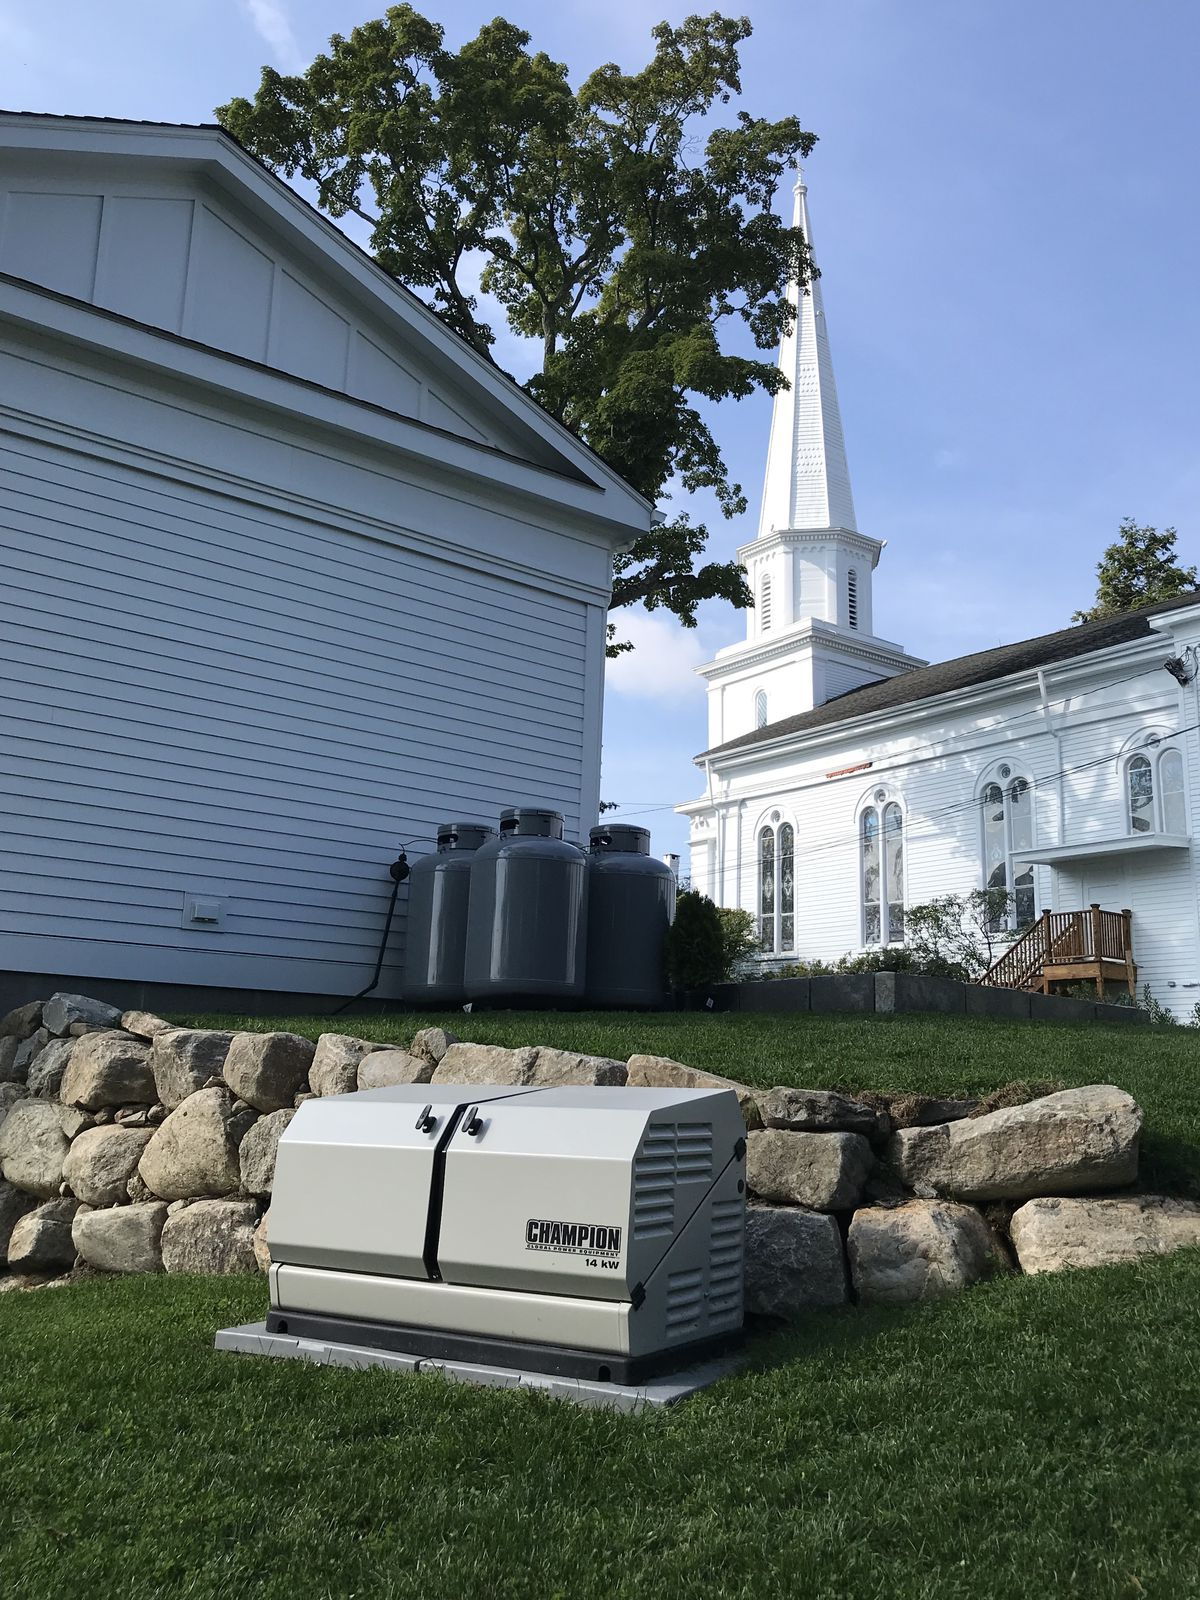 Champion standby generator at the 2019 Idea House, New Canaan, CT